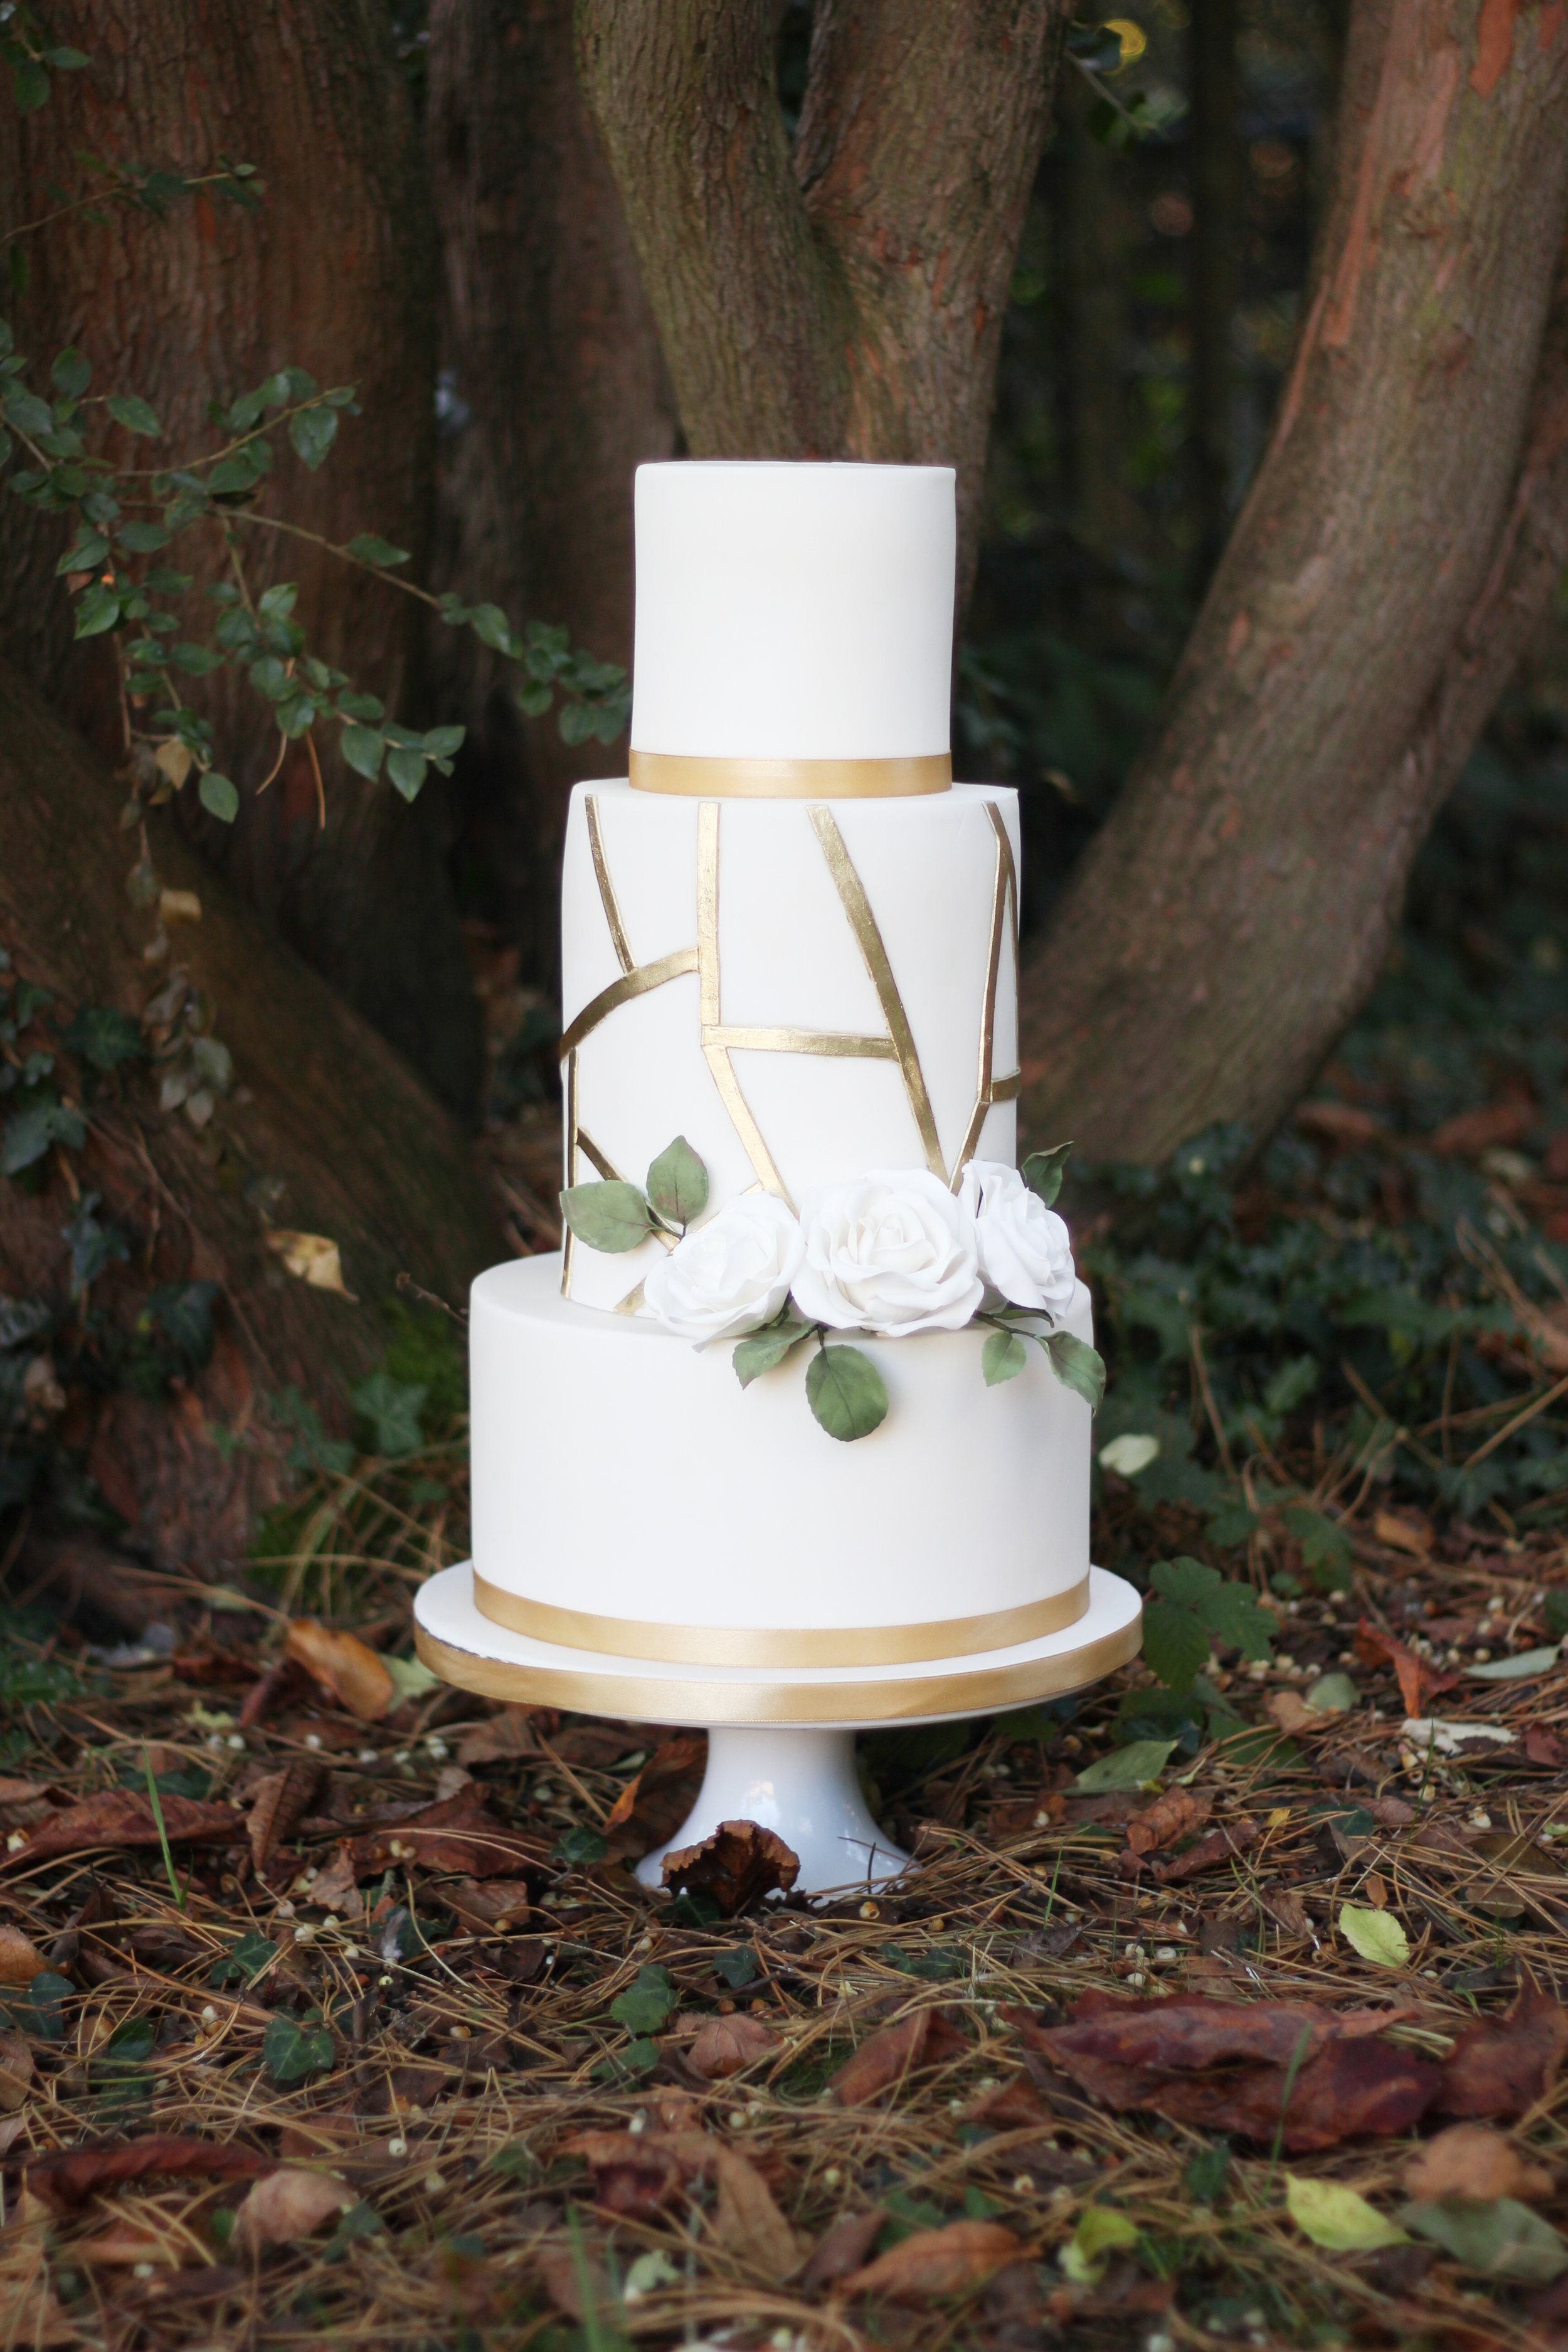 The Greenhouse Cakerie - Unique, hand crafted wedding and celebration cakes baked in Northamptonshire